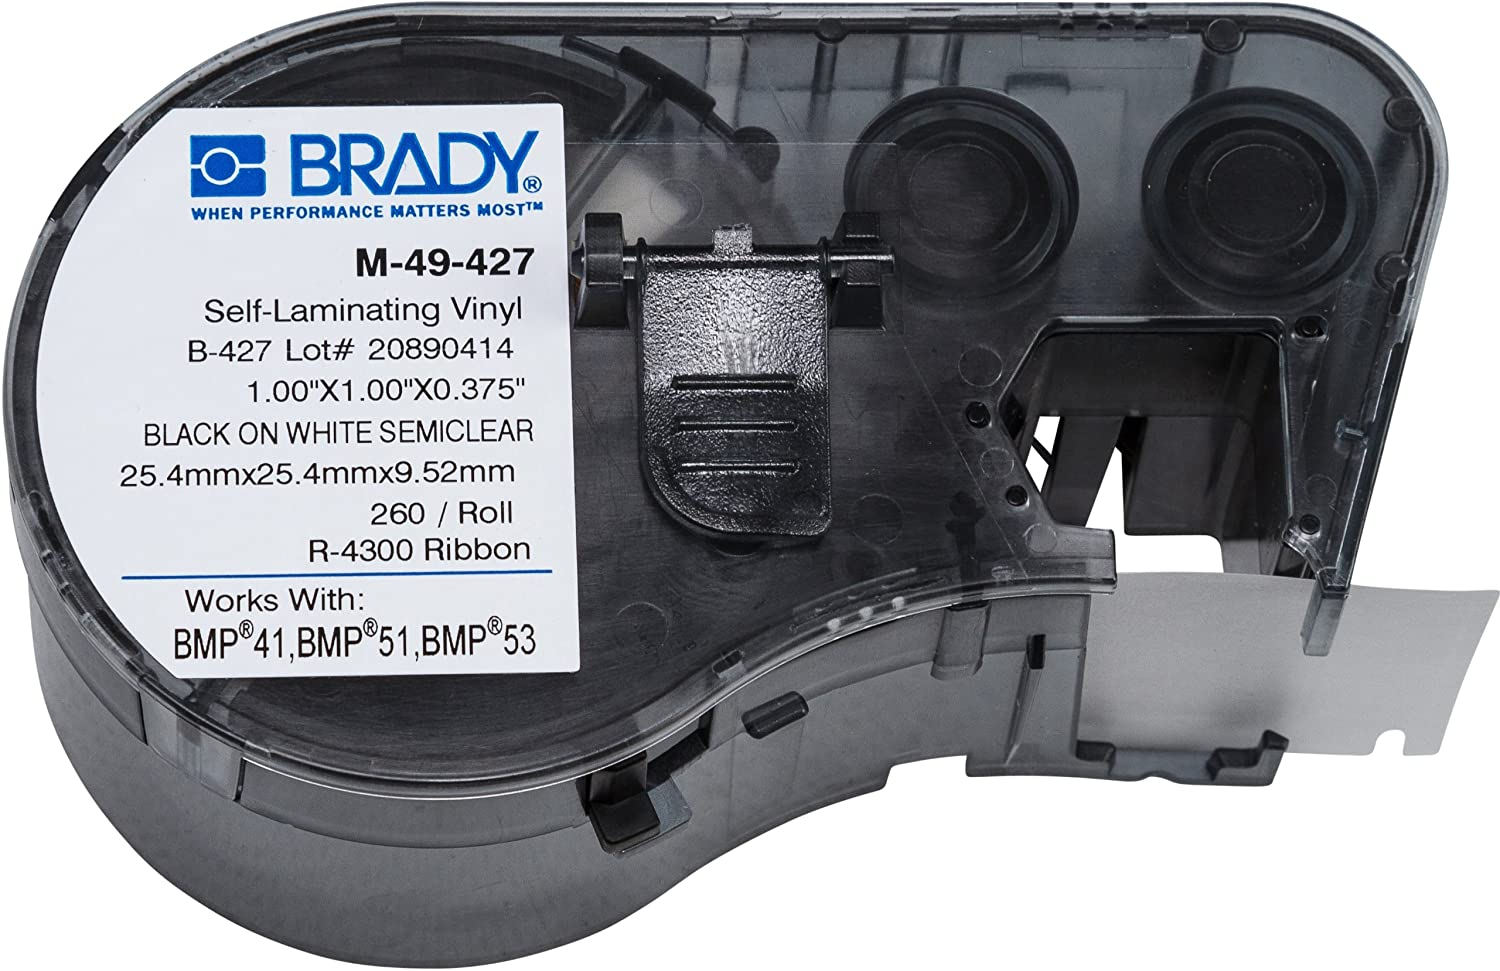 Brady Self-Laminating Vinyl Label Tape (M-49-427) - Black on White, Translucent Tape - Compatible with BMP41, BMP51, and BMP53 Label Makers - 1' Height, .375' Width and BMP53 Label Makers - 1 Height .375 Width